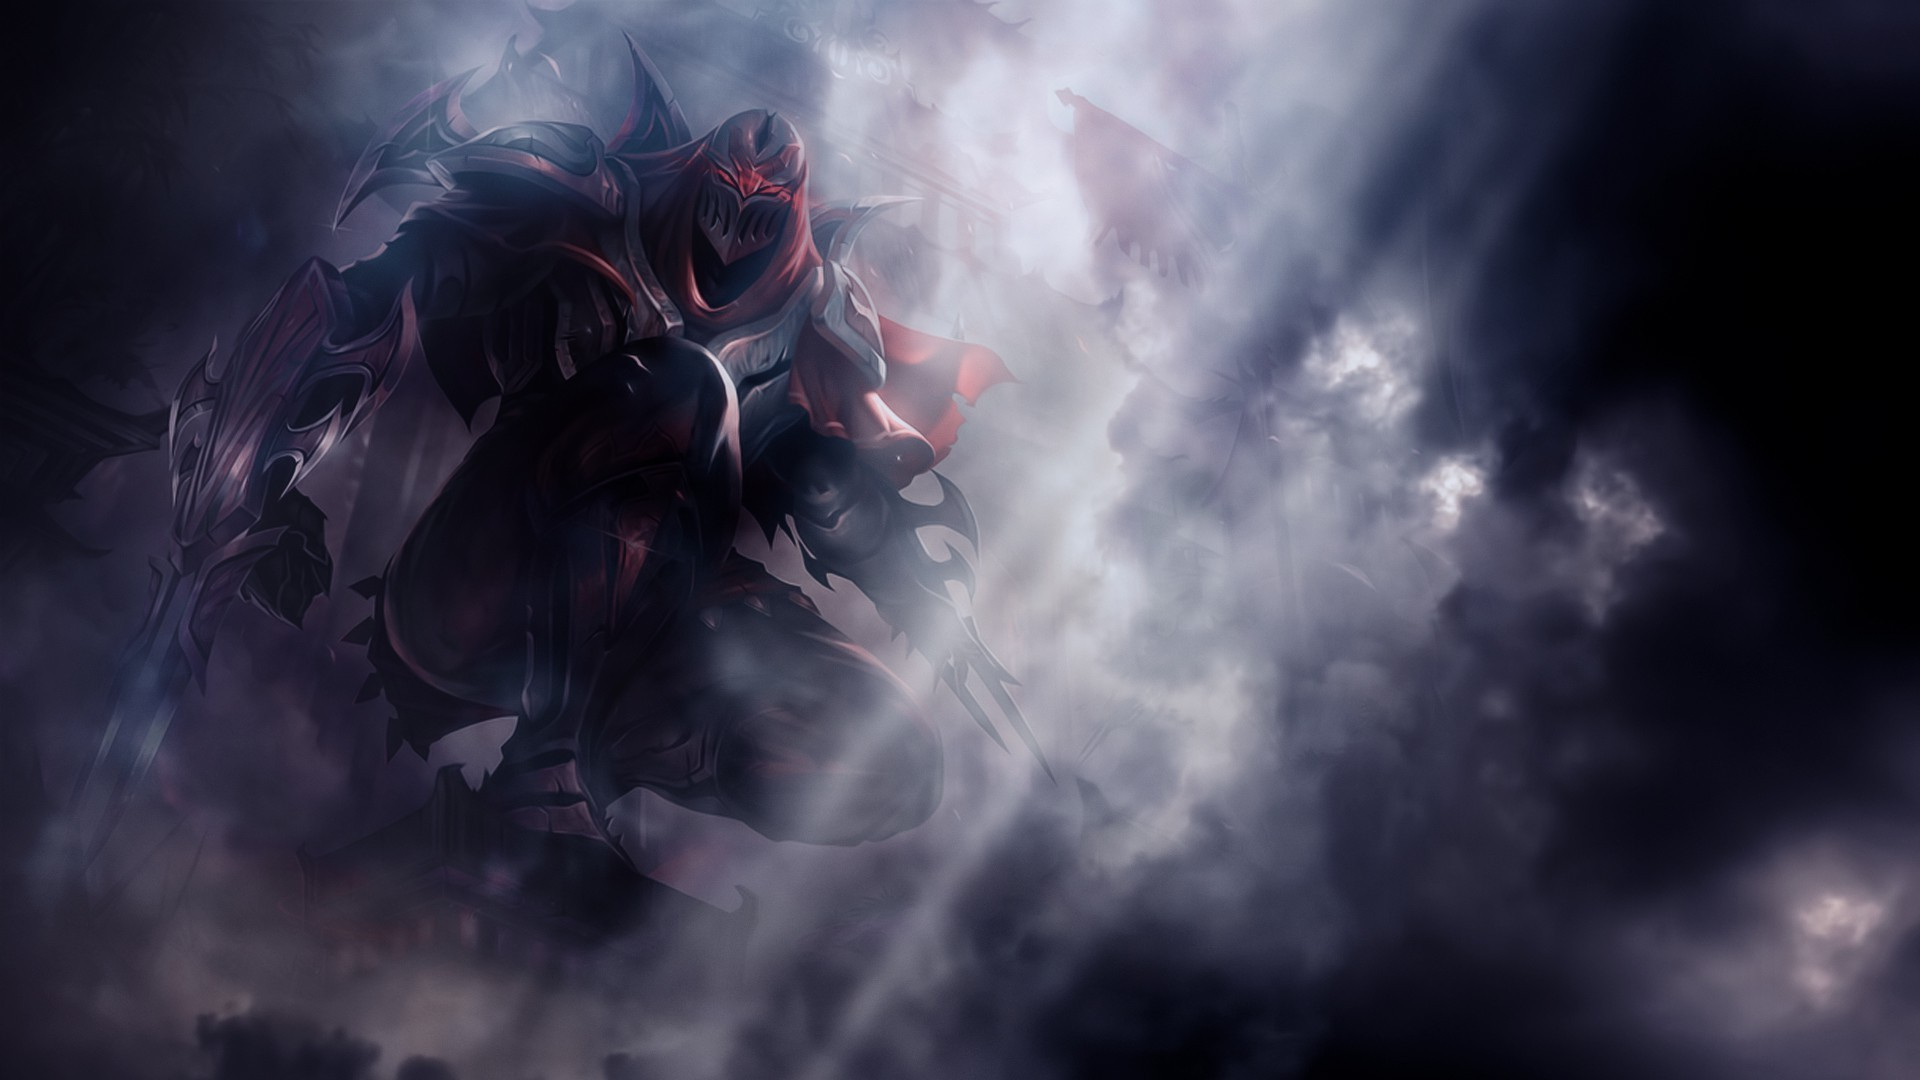 Introducing Zed, The Master of Shadows - LoL News